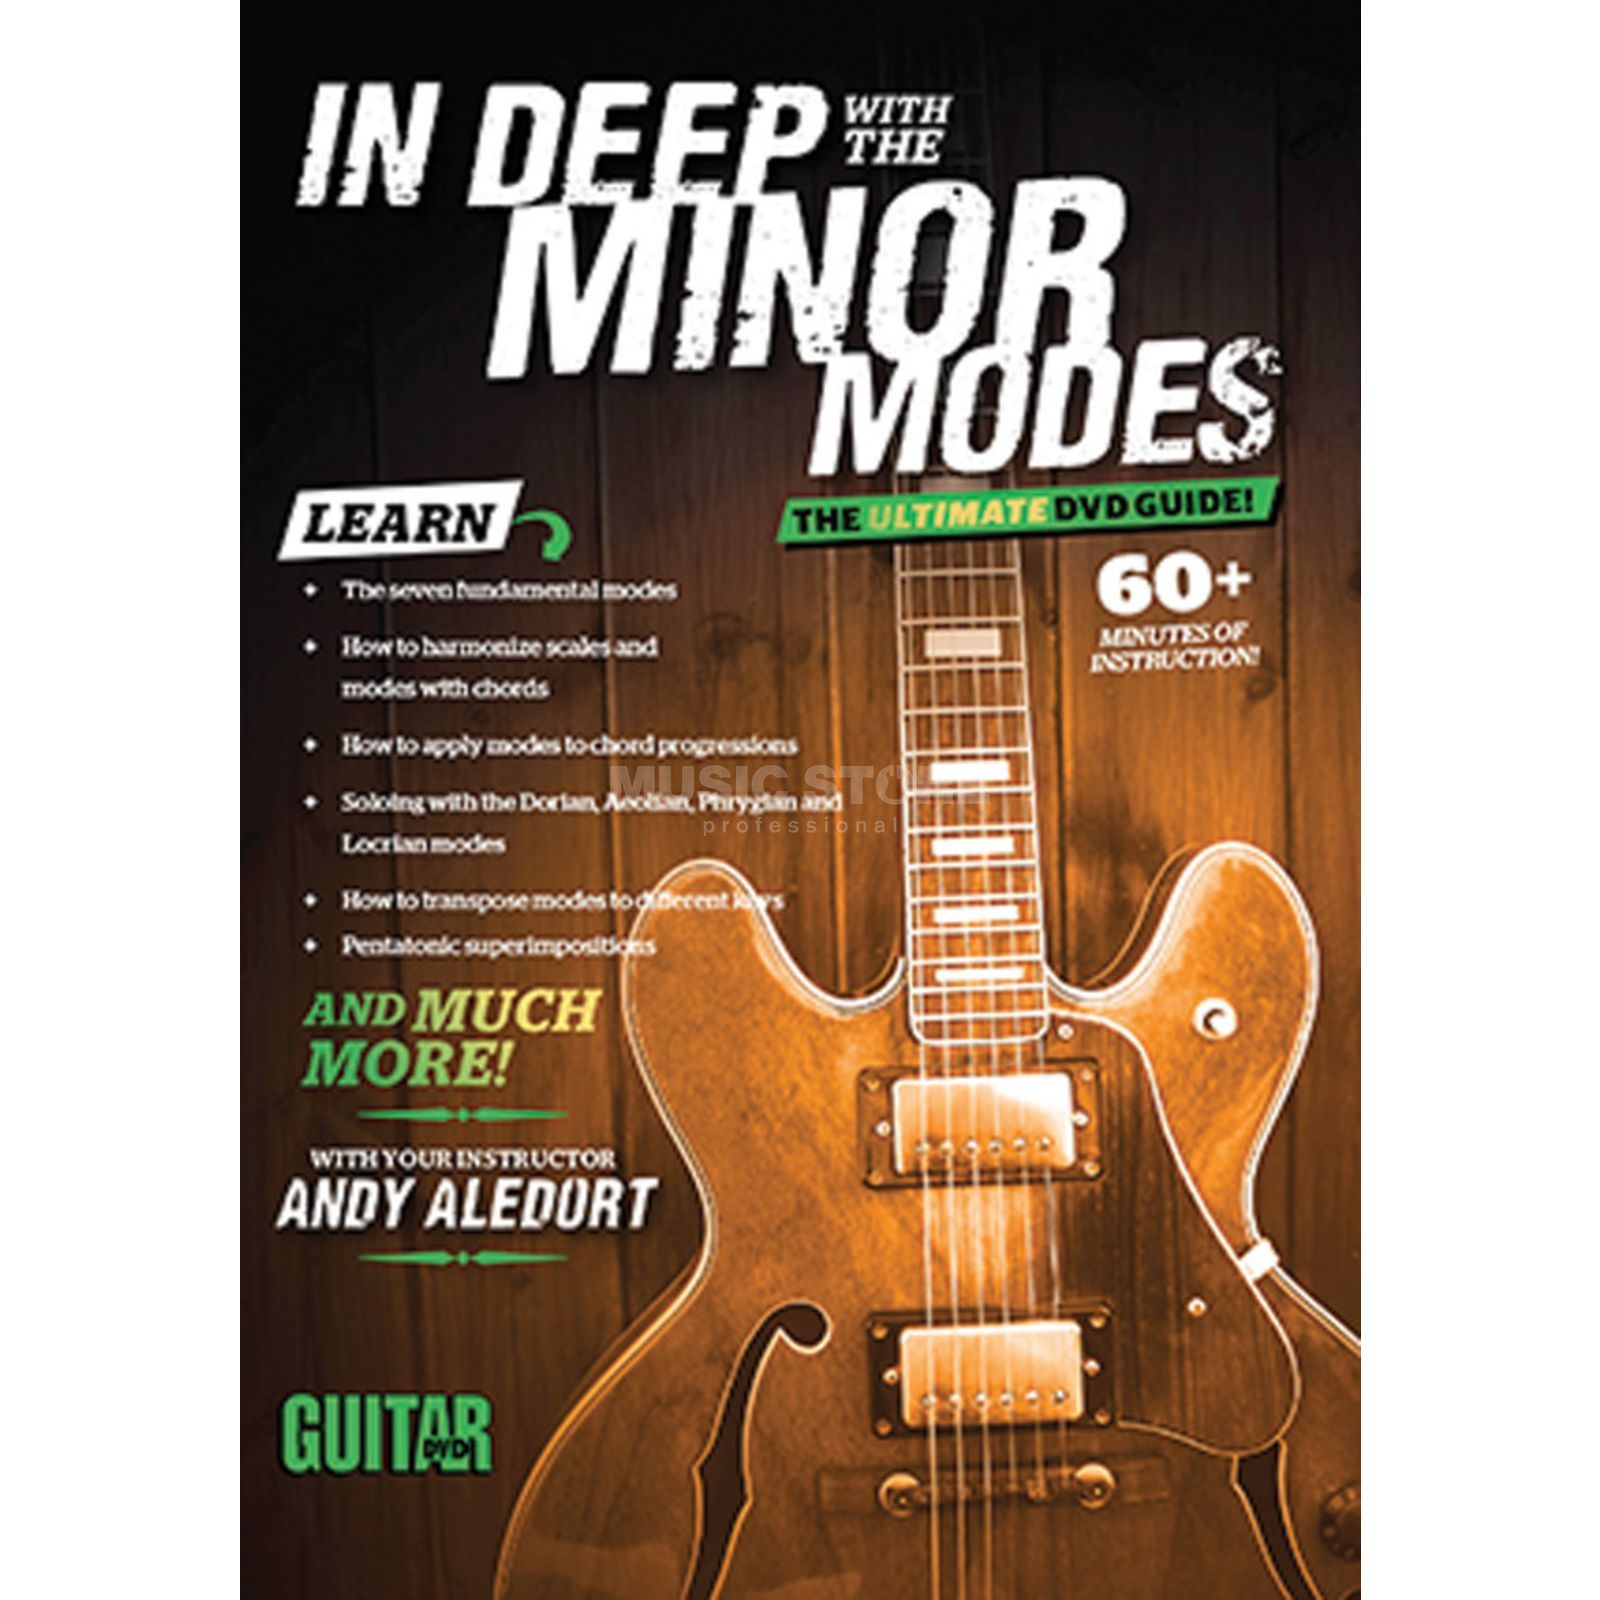 Alfred Music Guitar World: In Deep with the Minor Modes Product Image